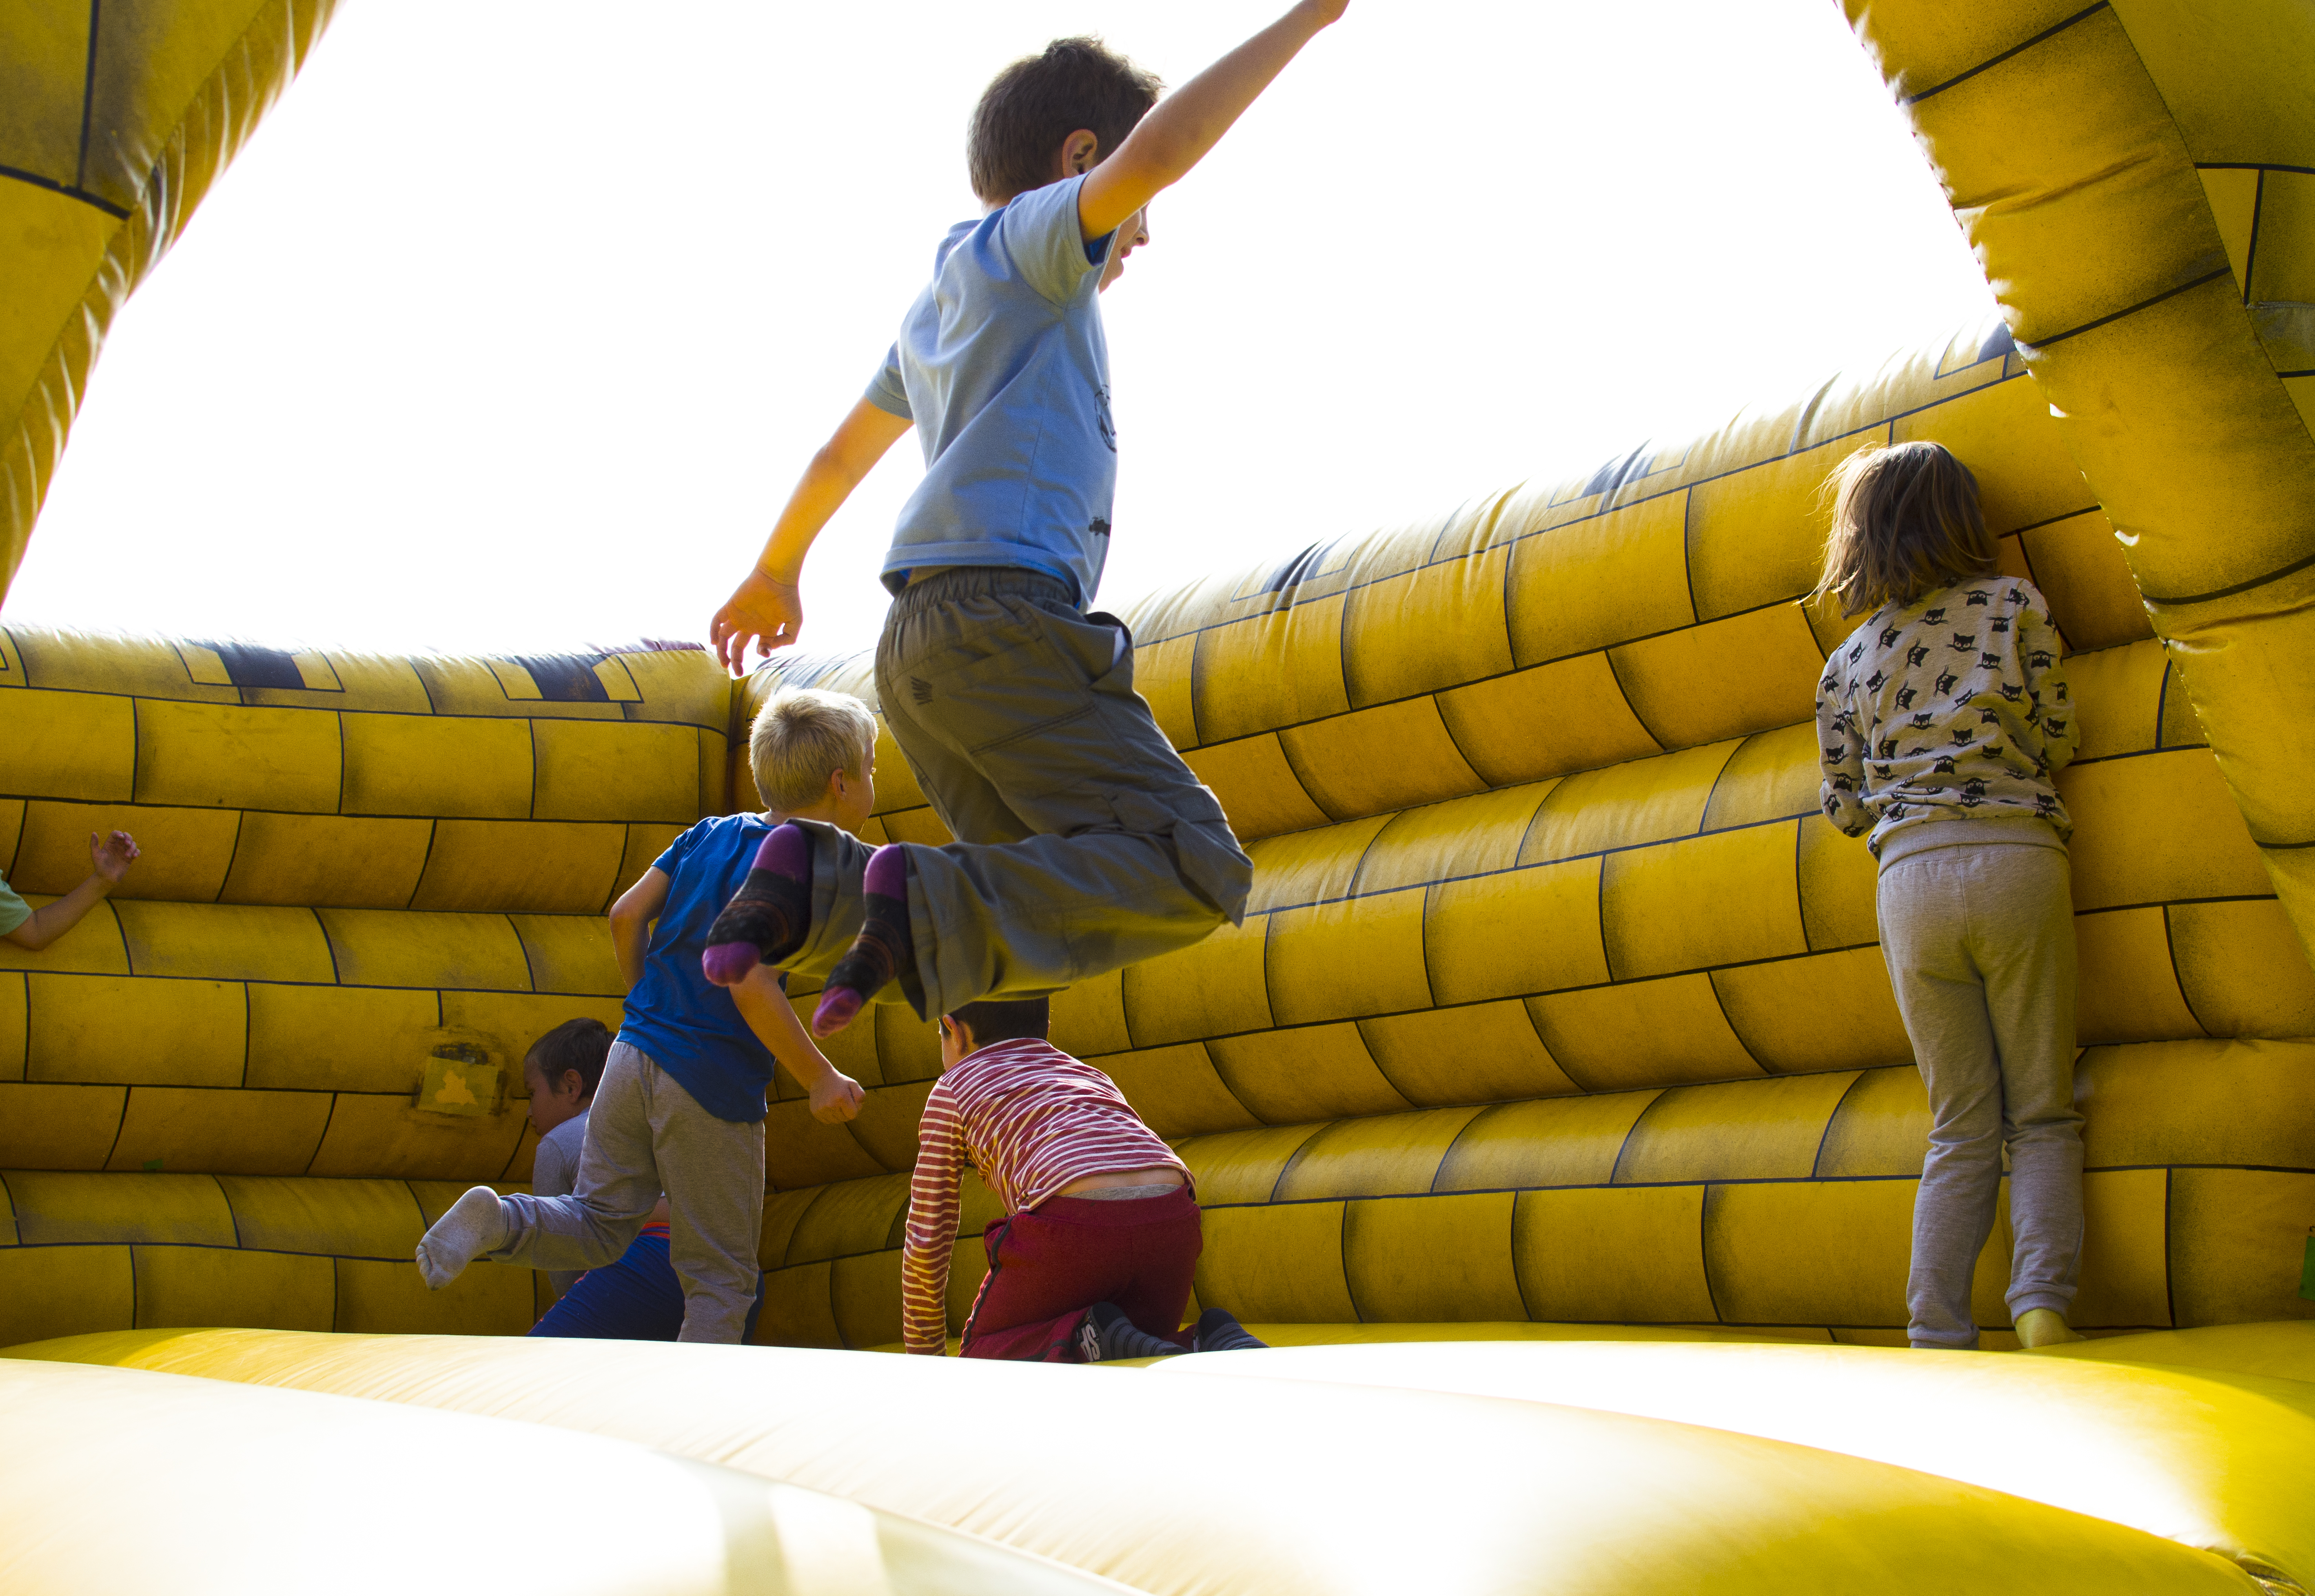 Kids jumping and playing in a bouncy castle